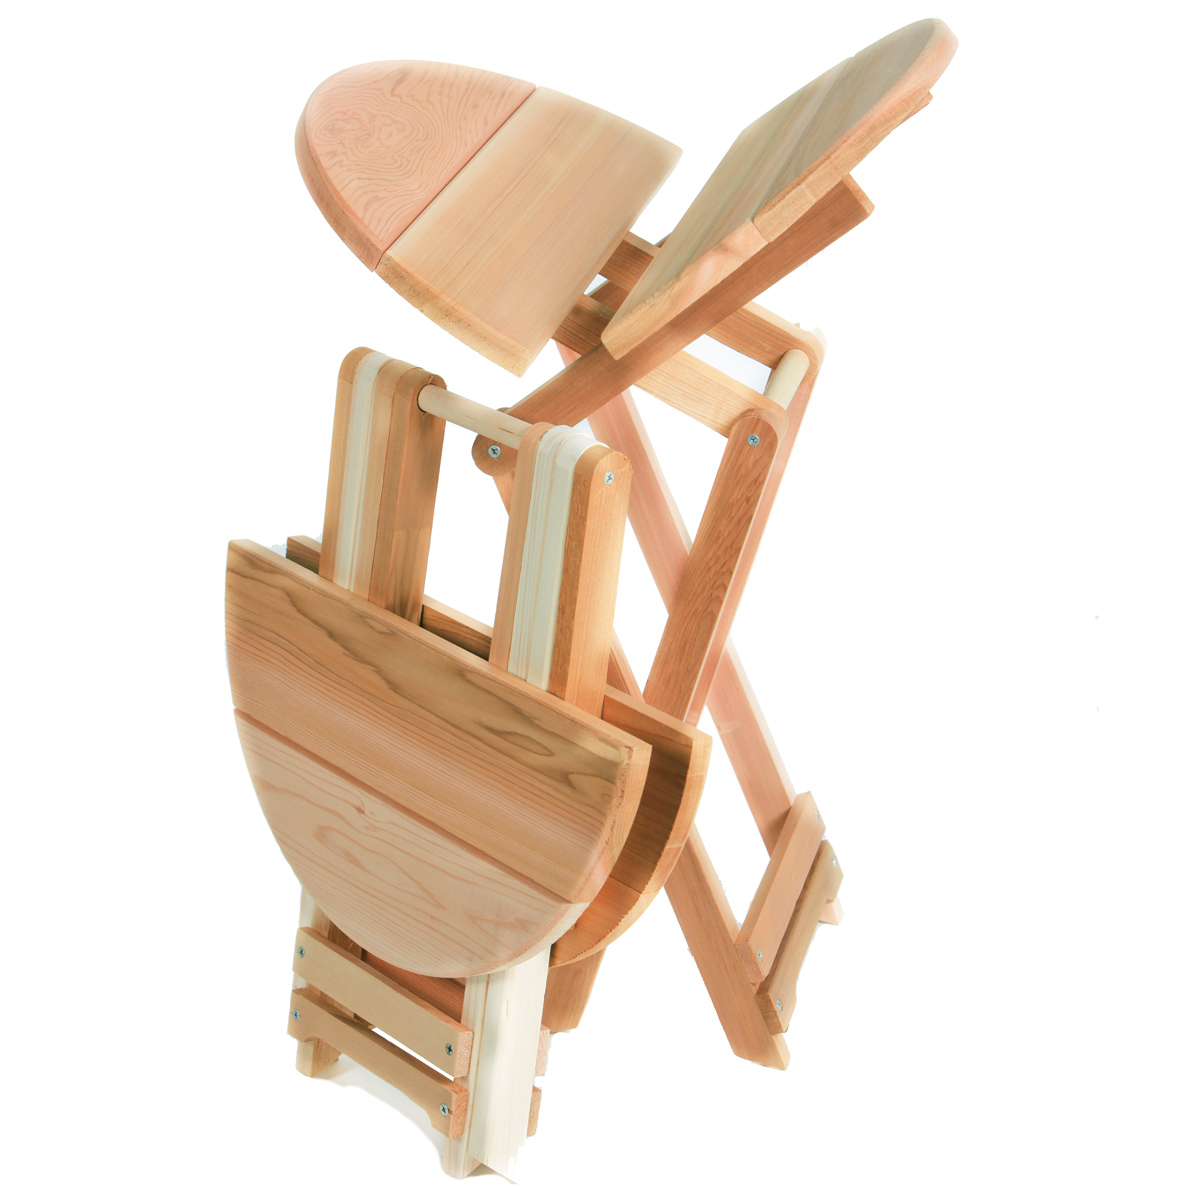 Adirondack Folding Chairs And Tables By All Things Cedar